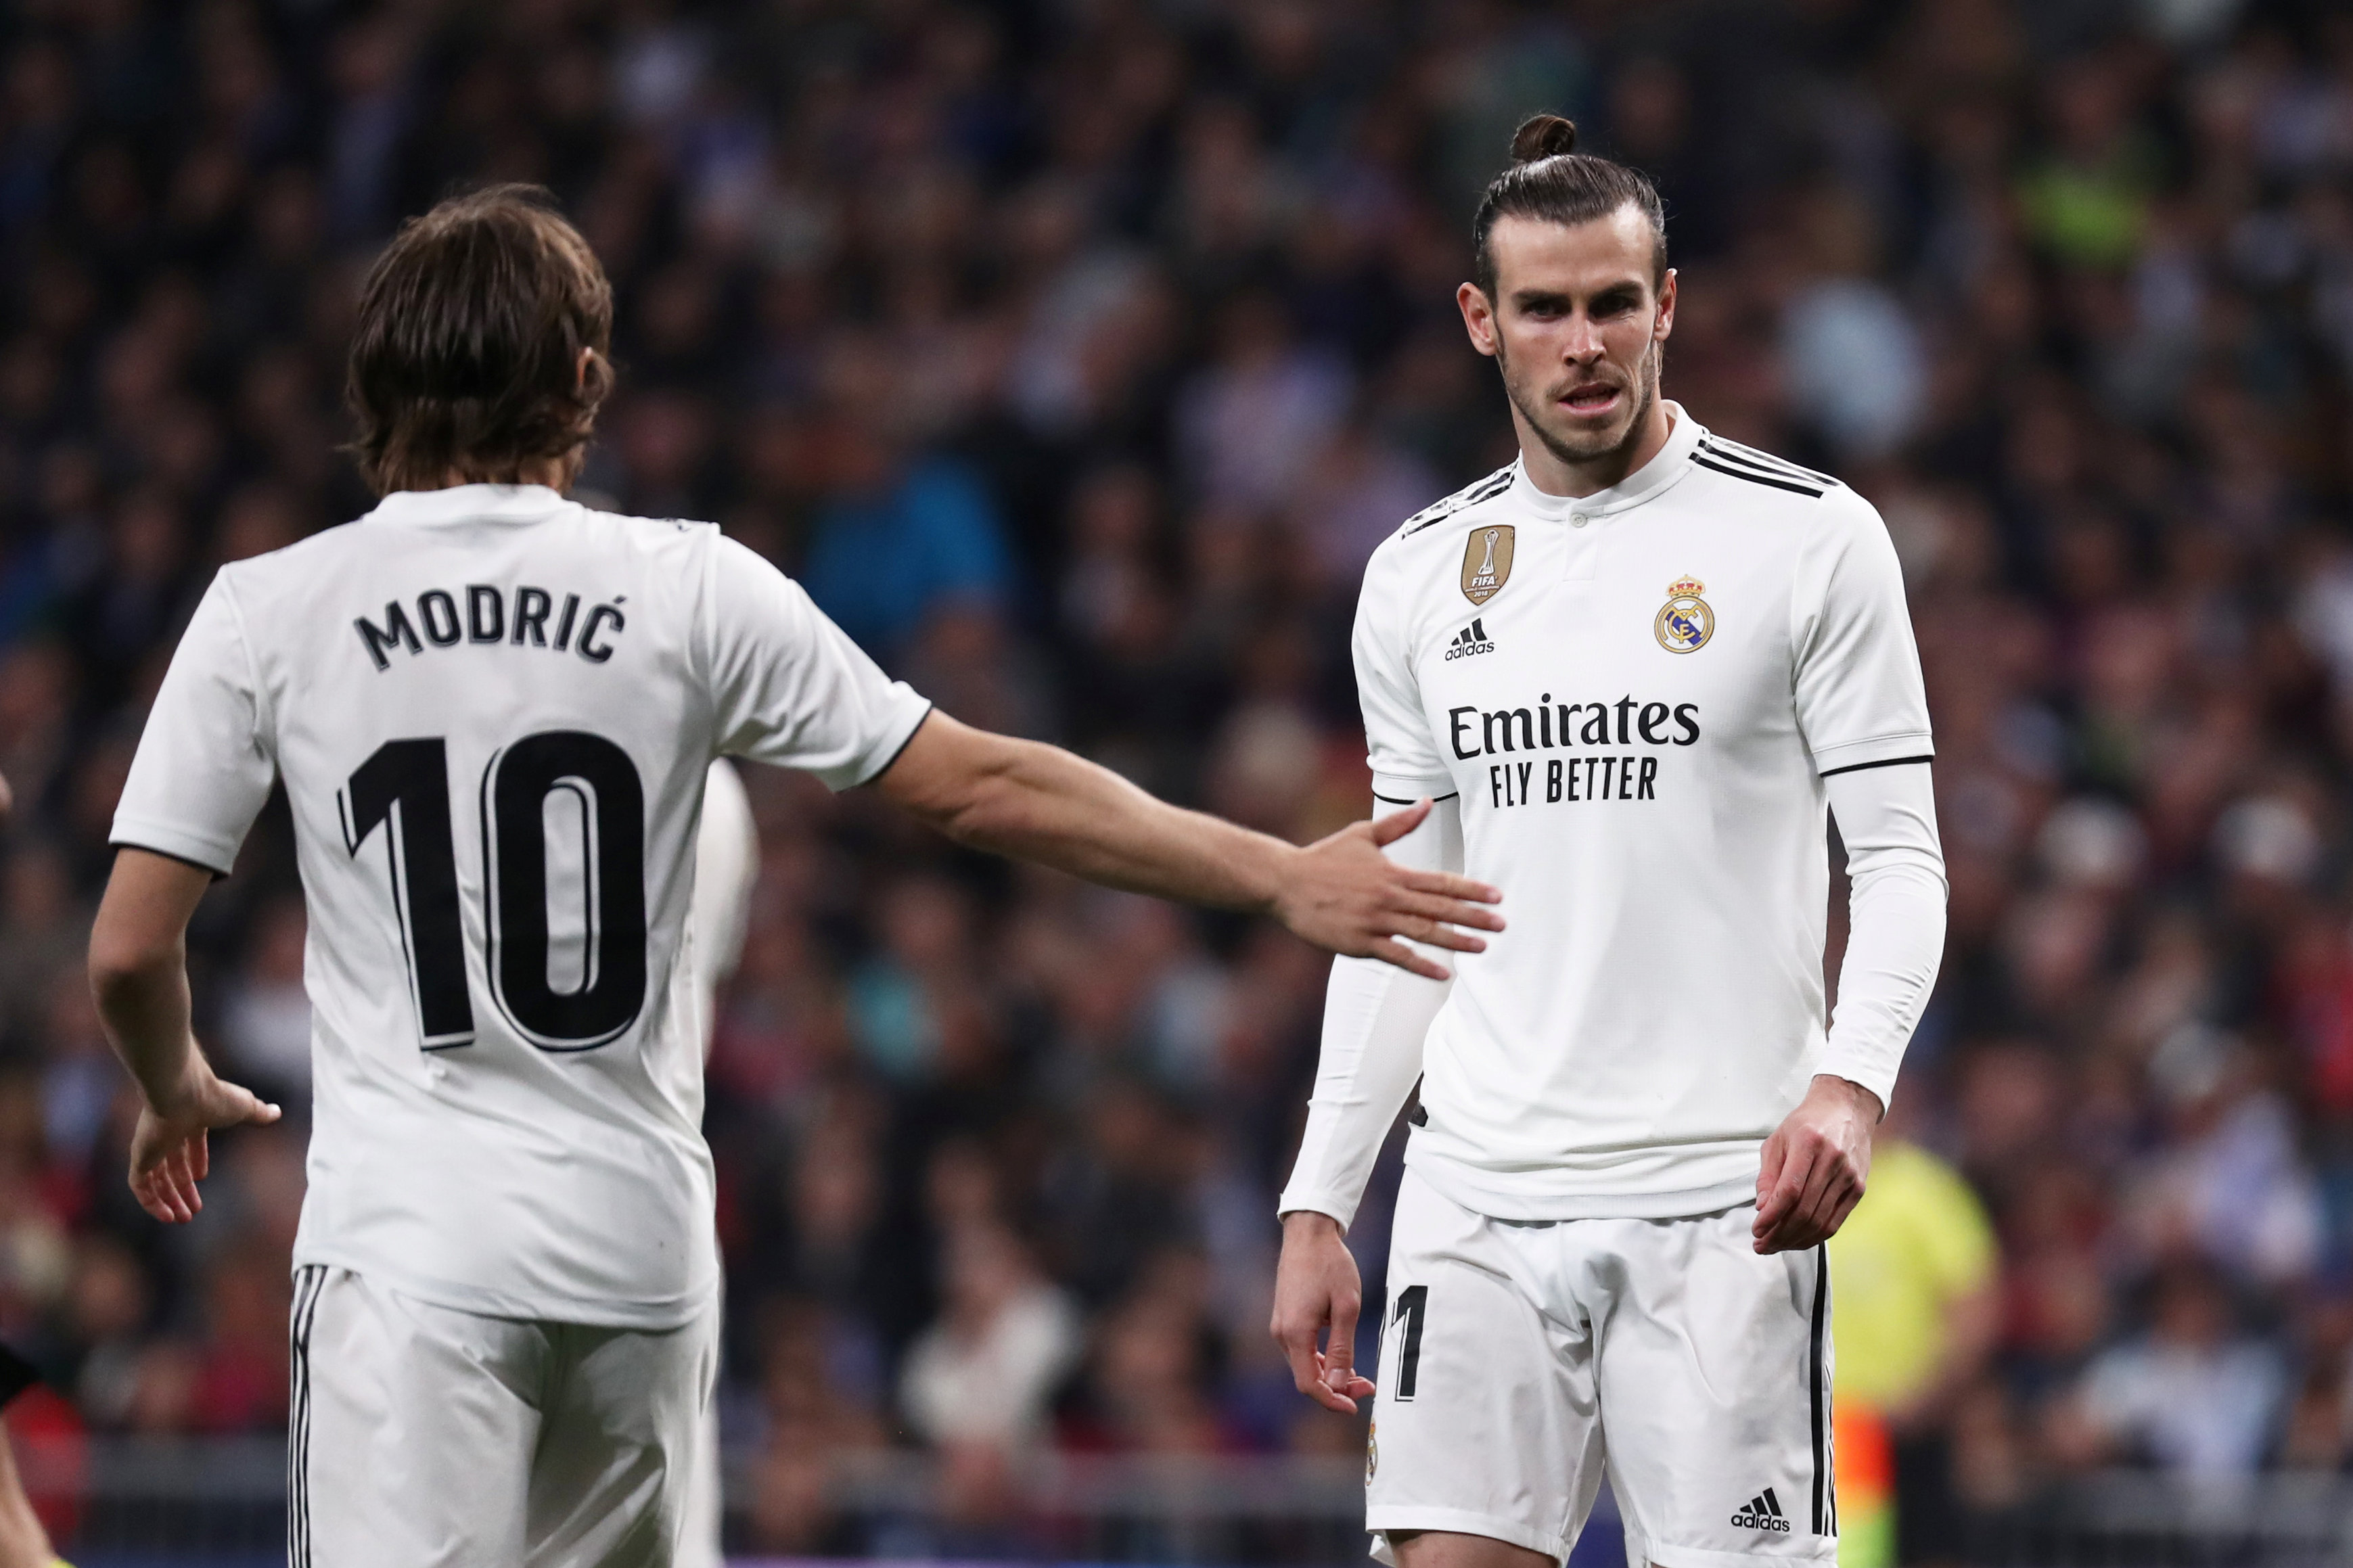 Bale want to get one over Modric